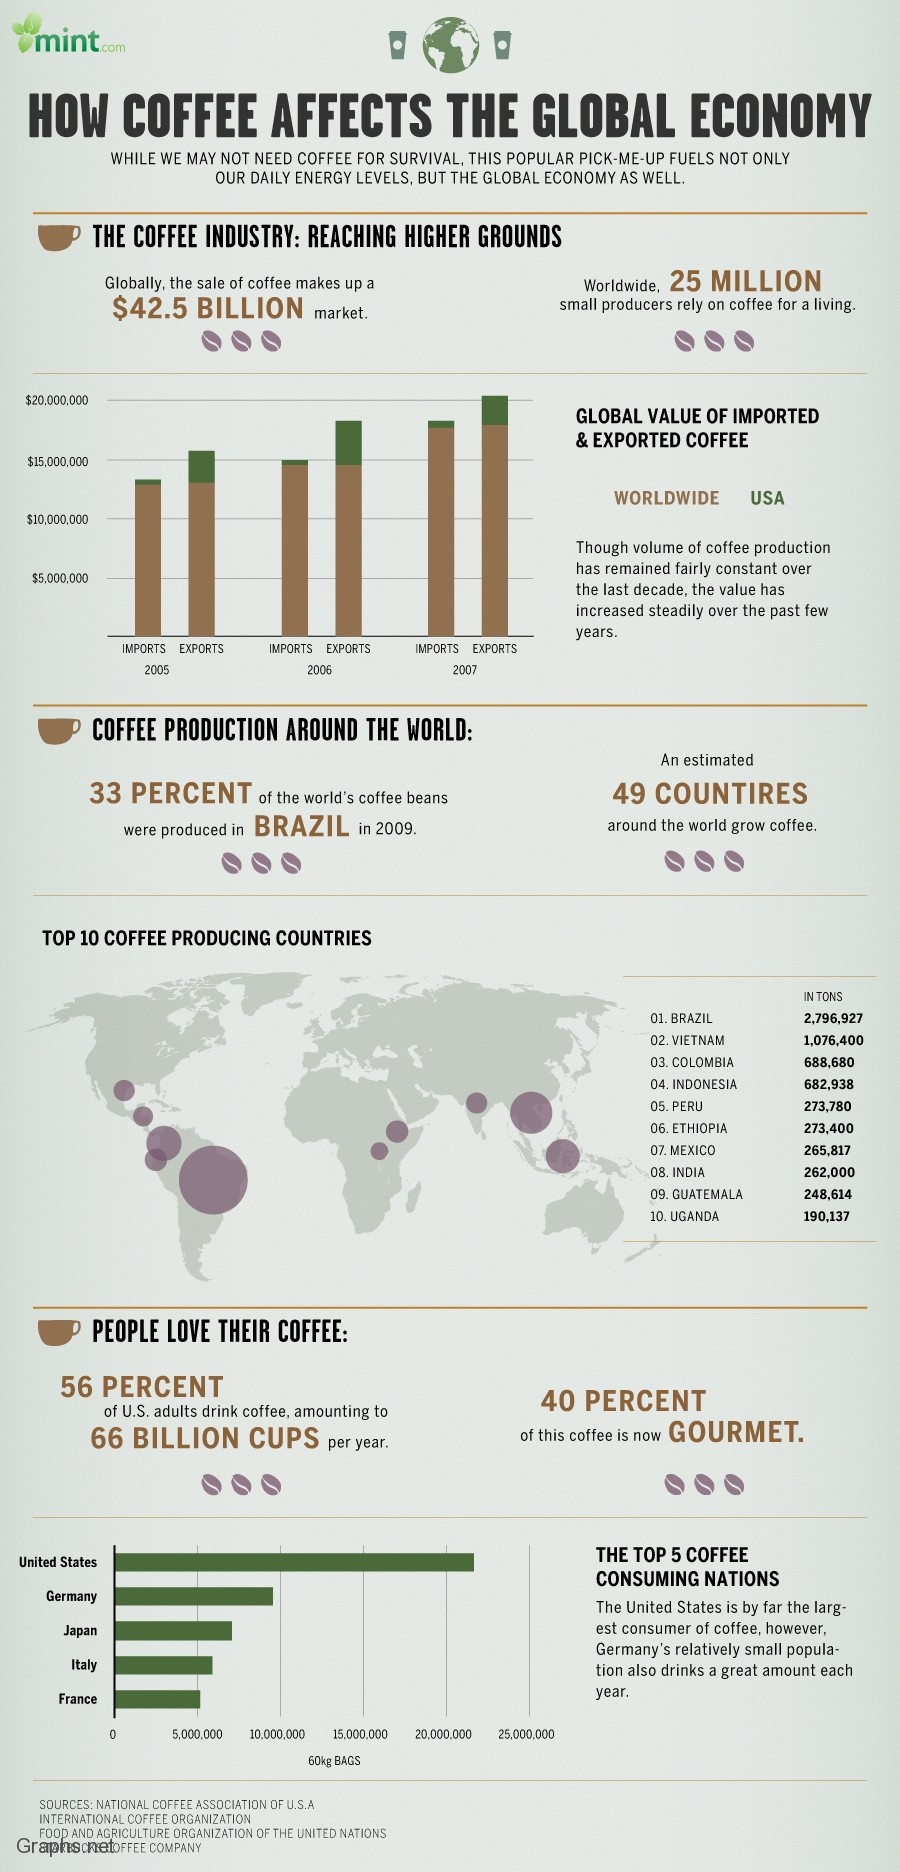 Affects of coffee on global economy